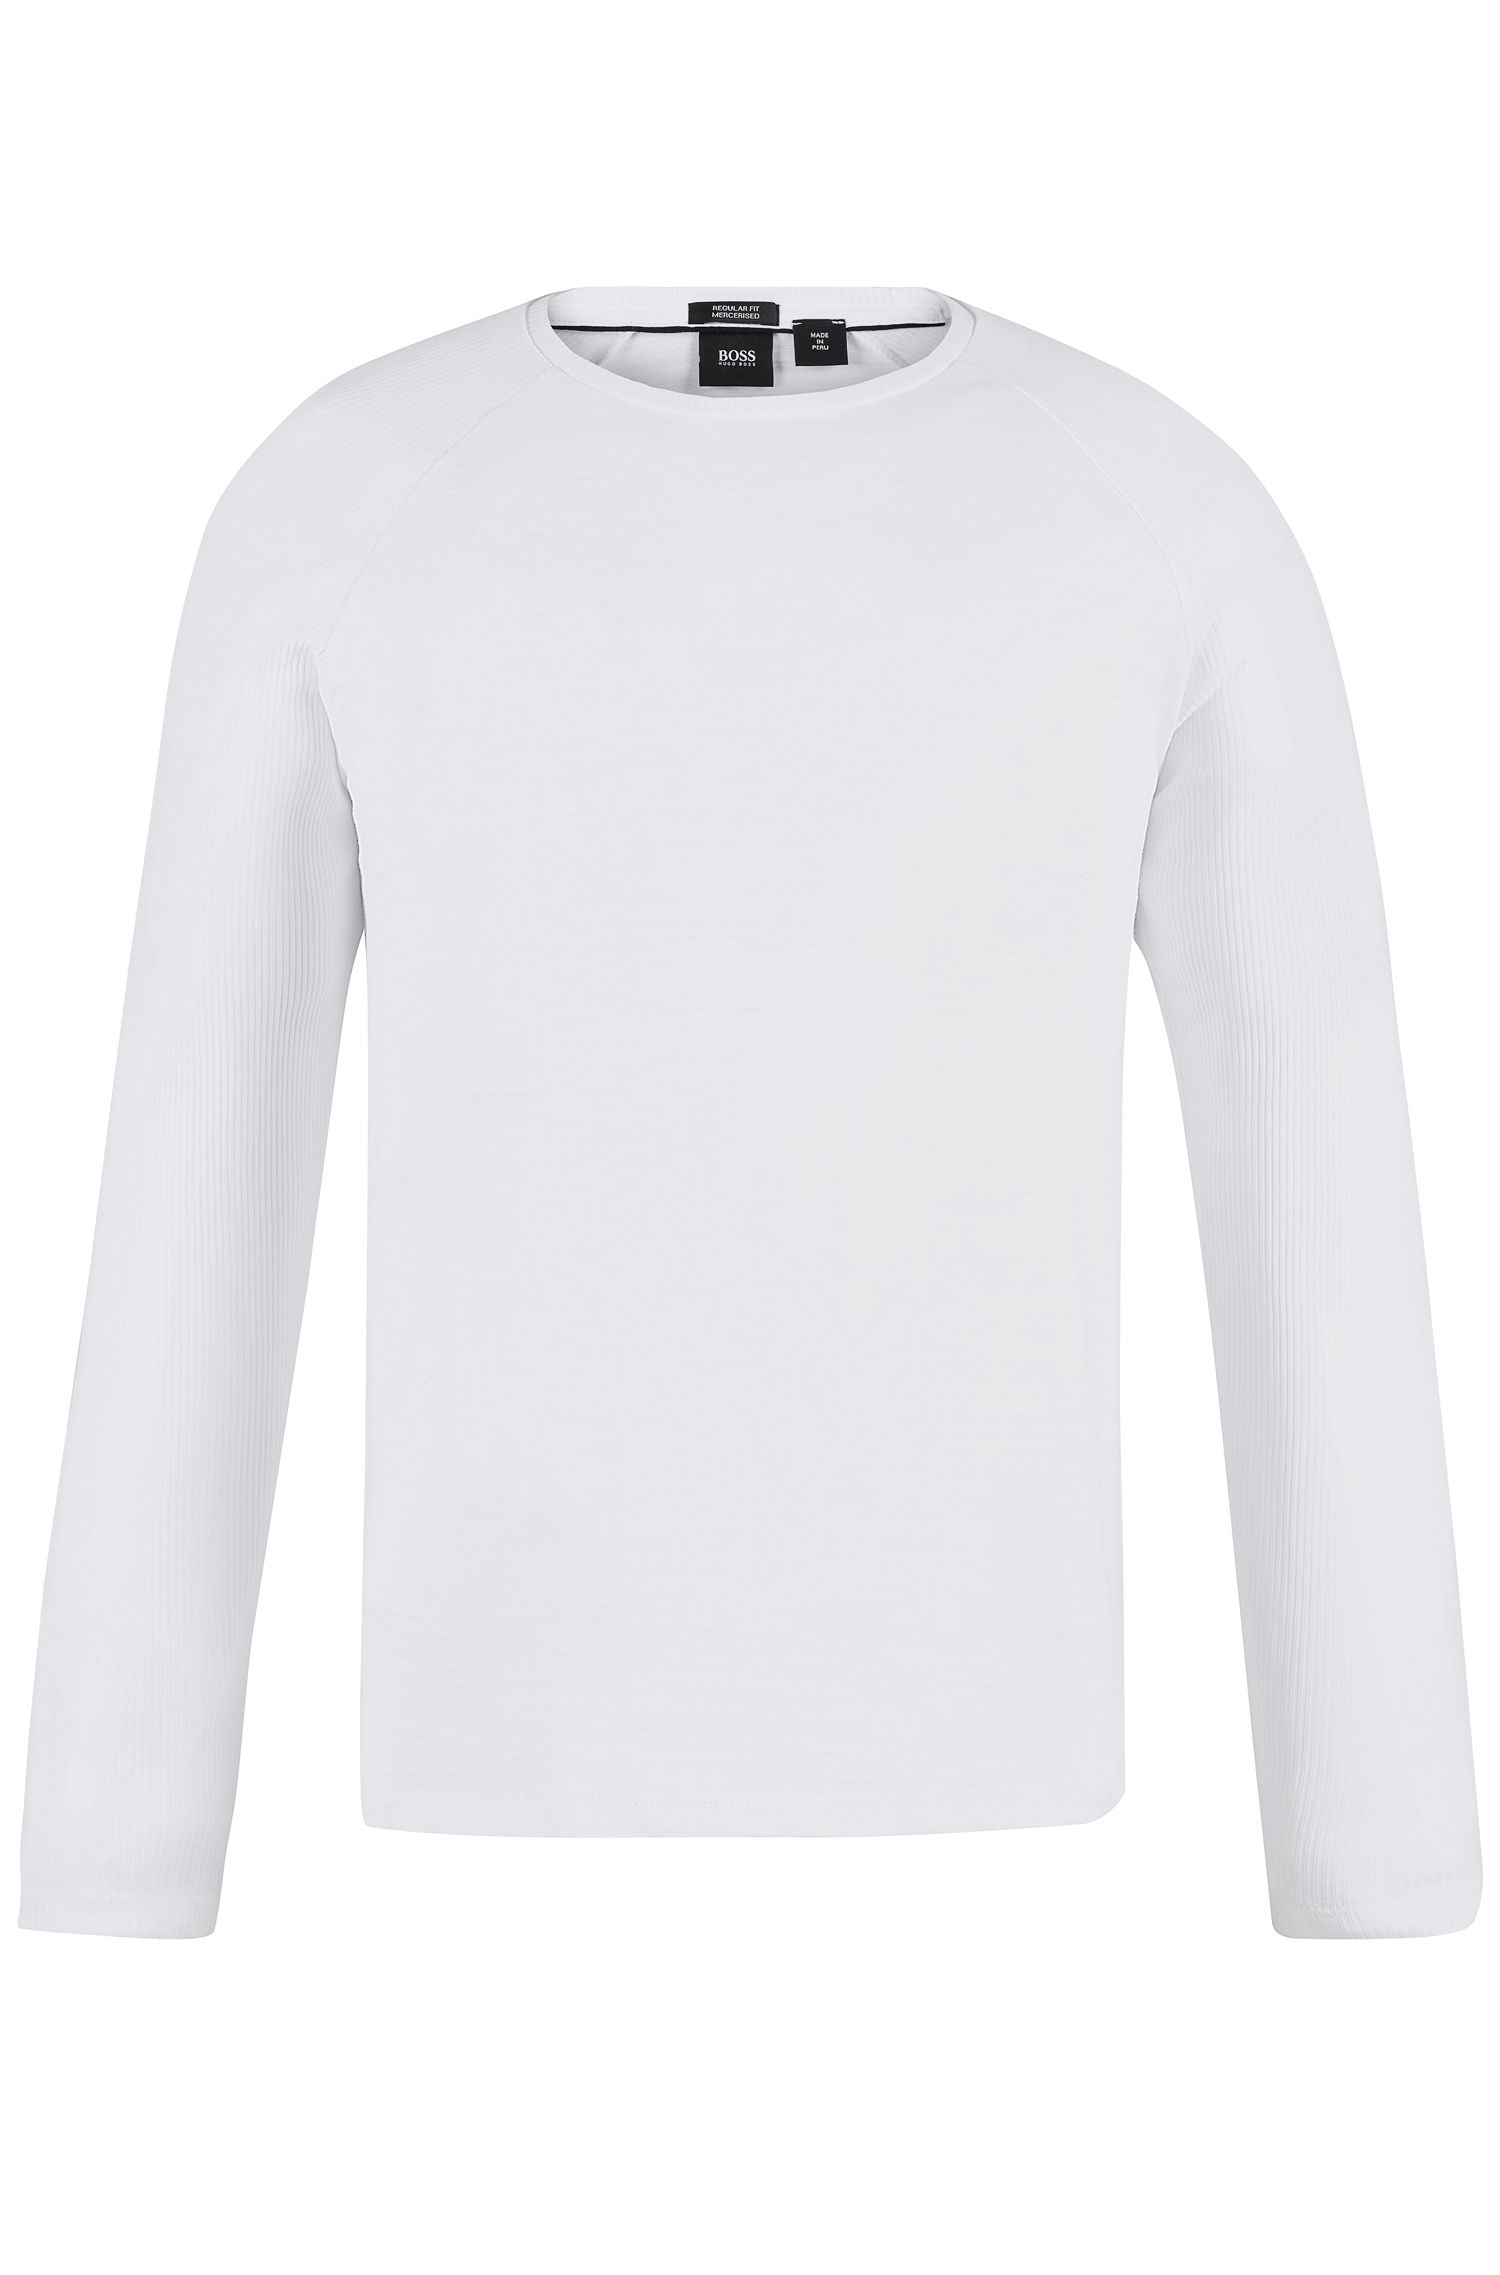 Cotton Long-Sleeved T-Shirt | Terell